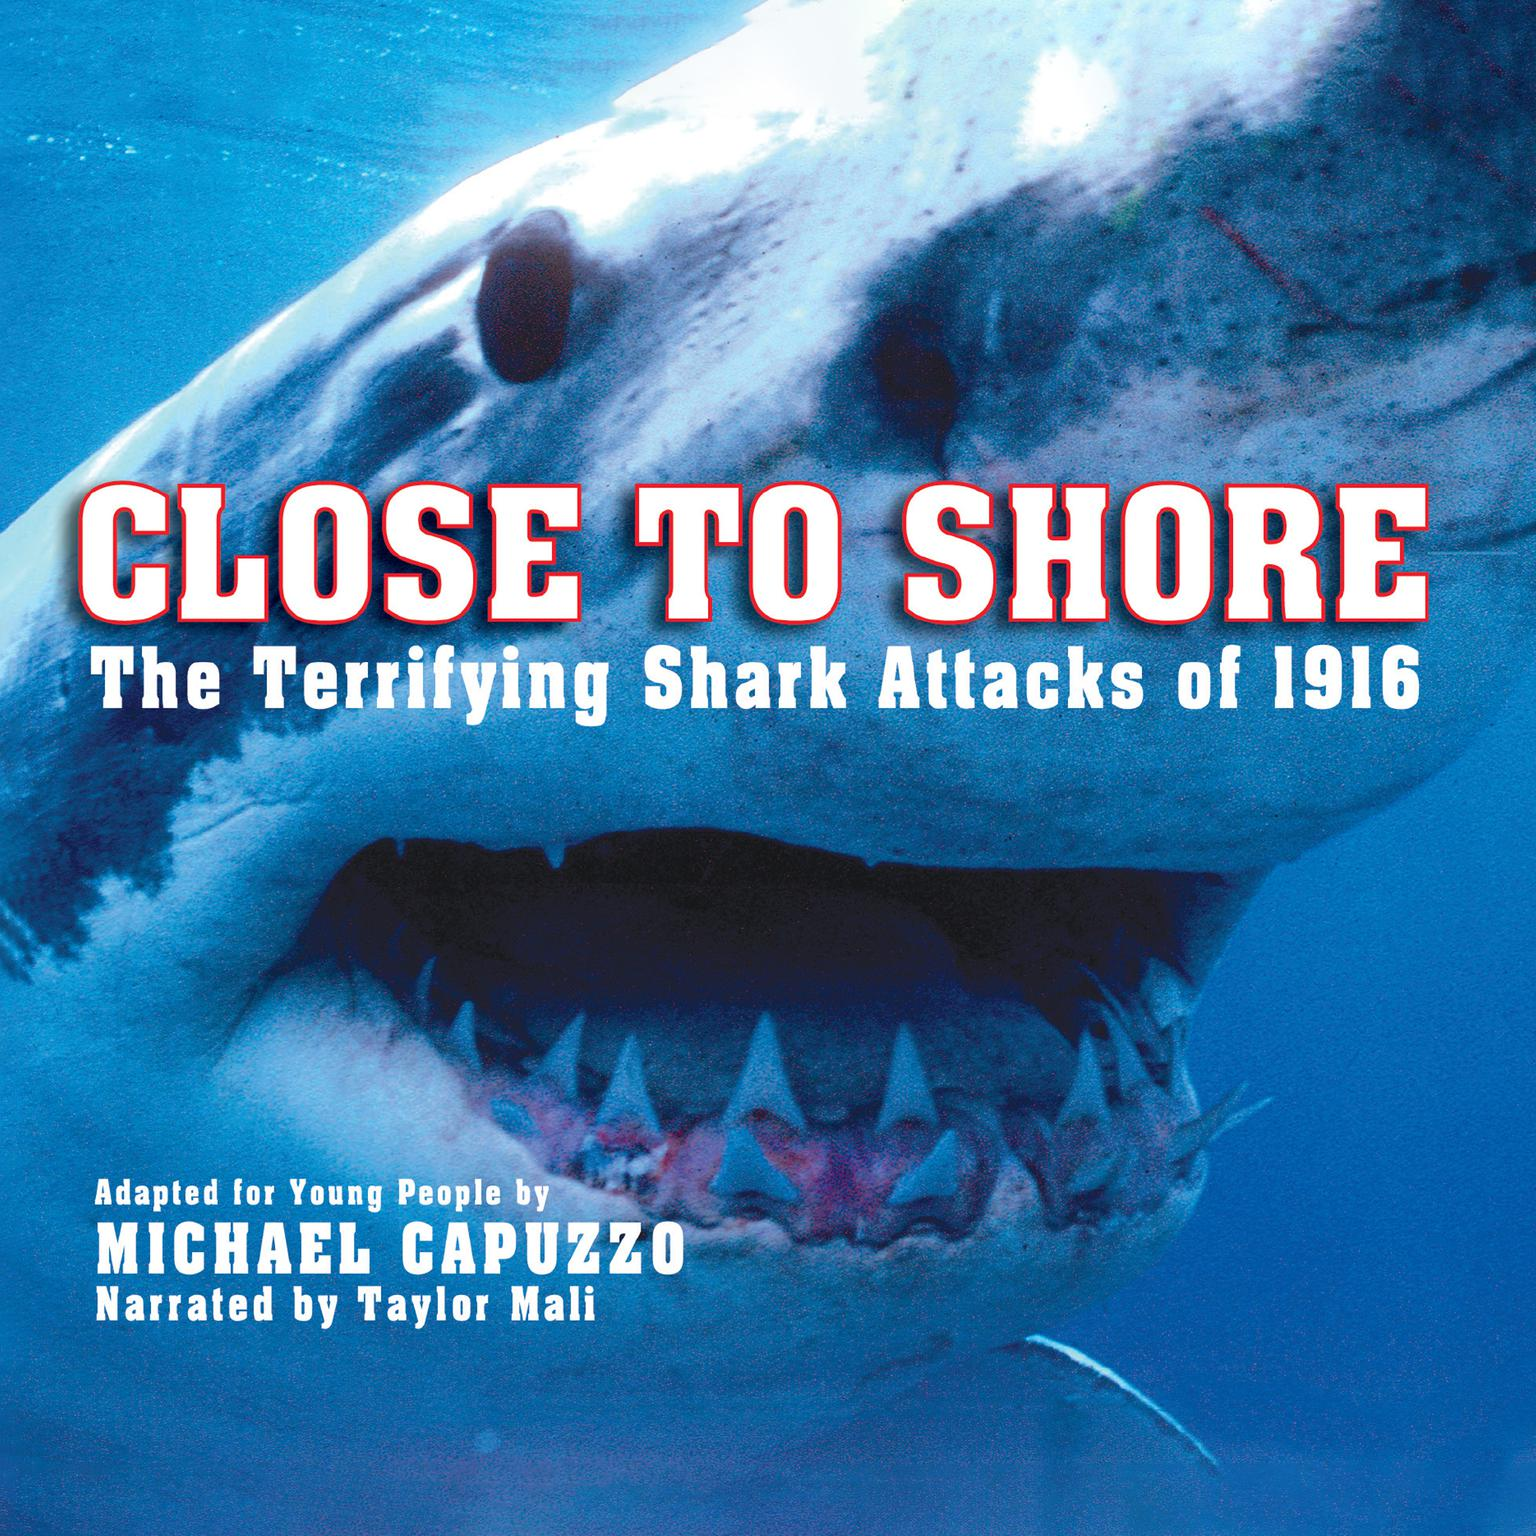 shark attack of 1916